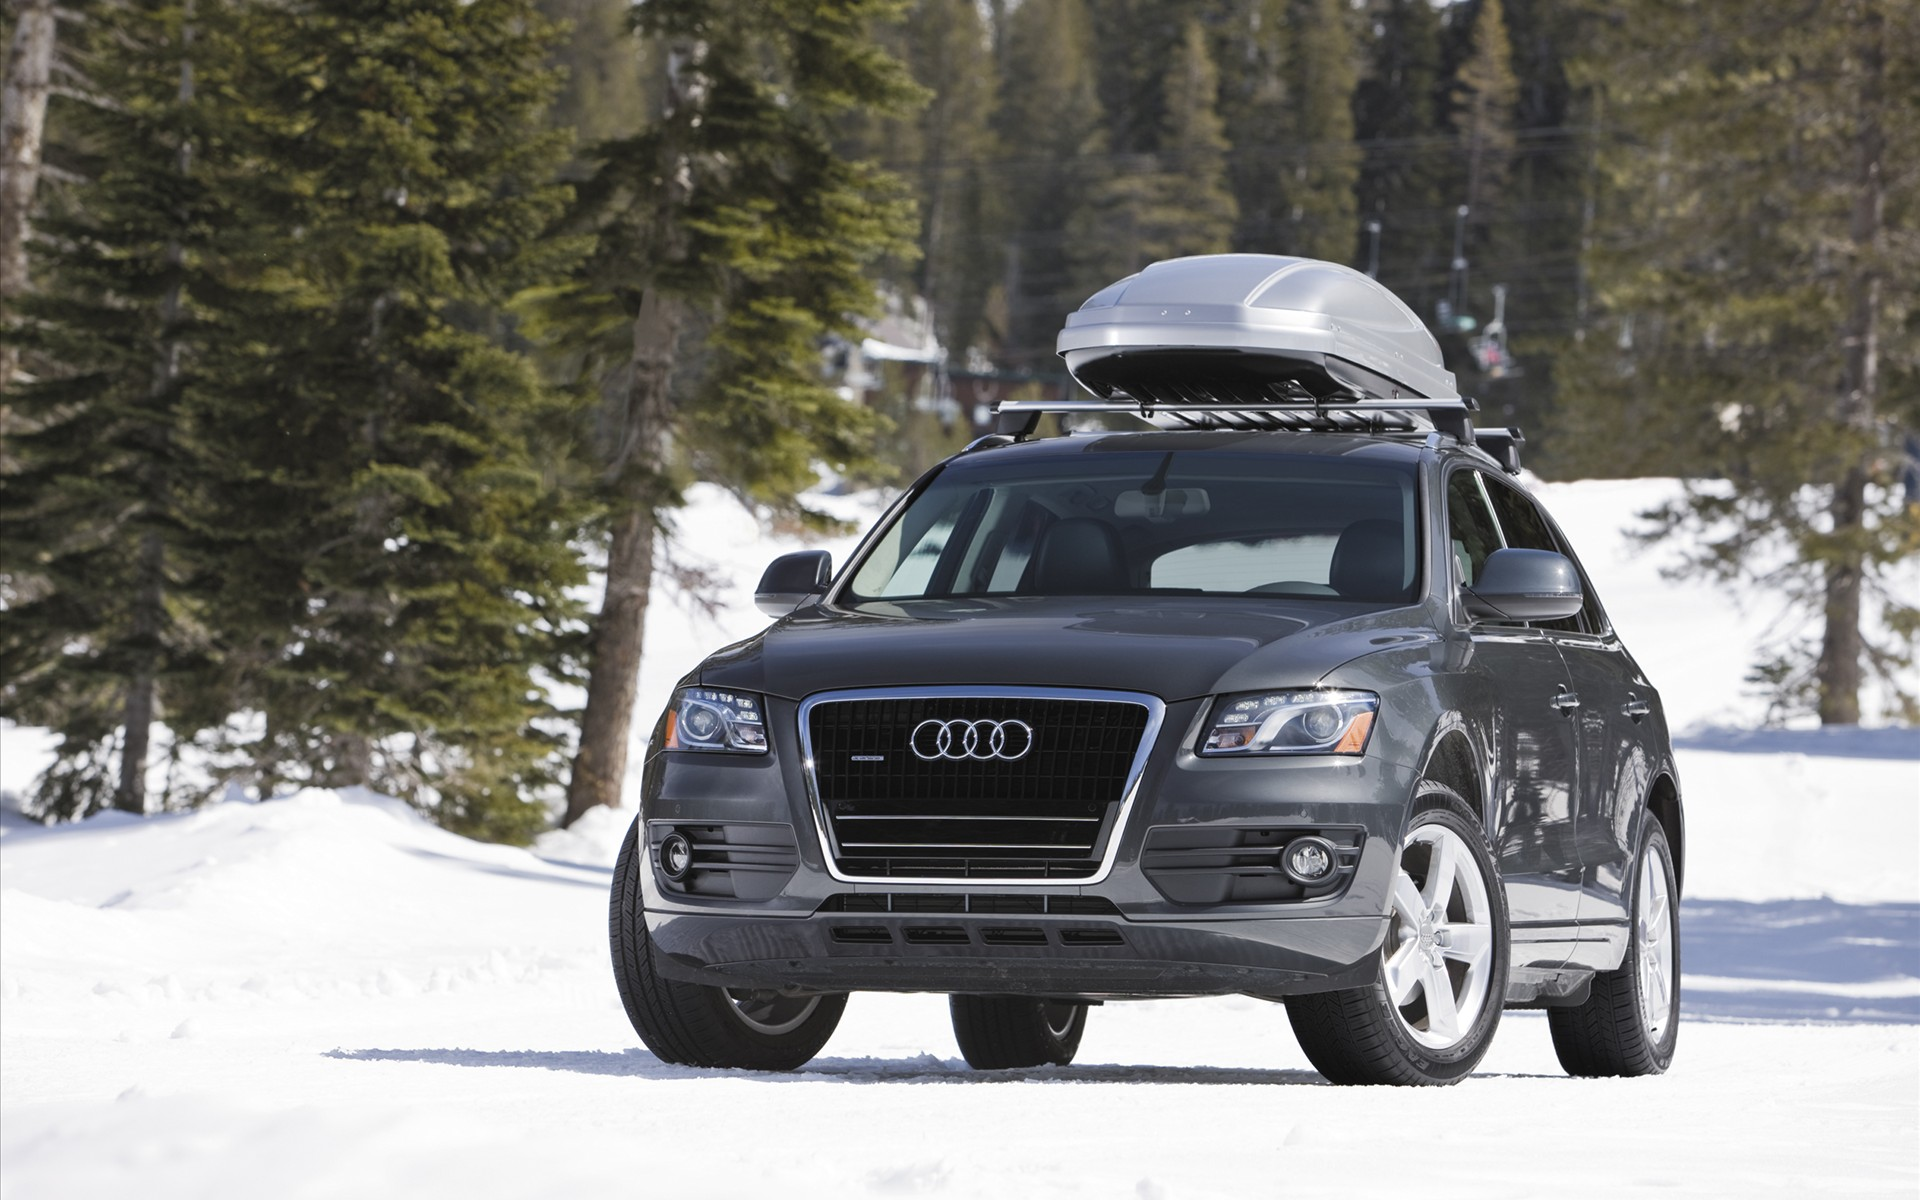 1920x1200 - Audi Q5 Wallpapers 31